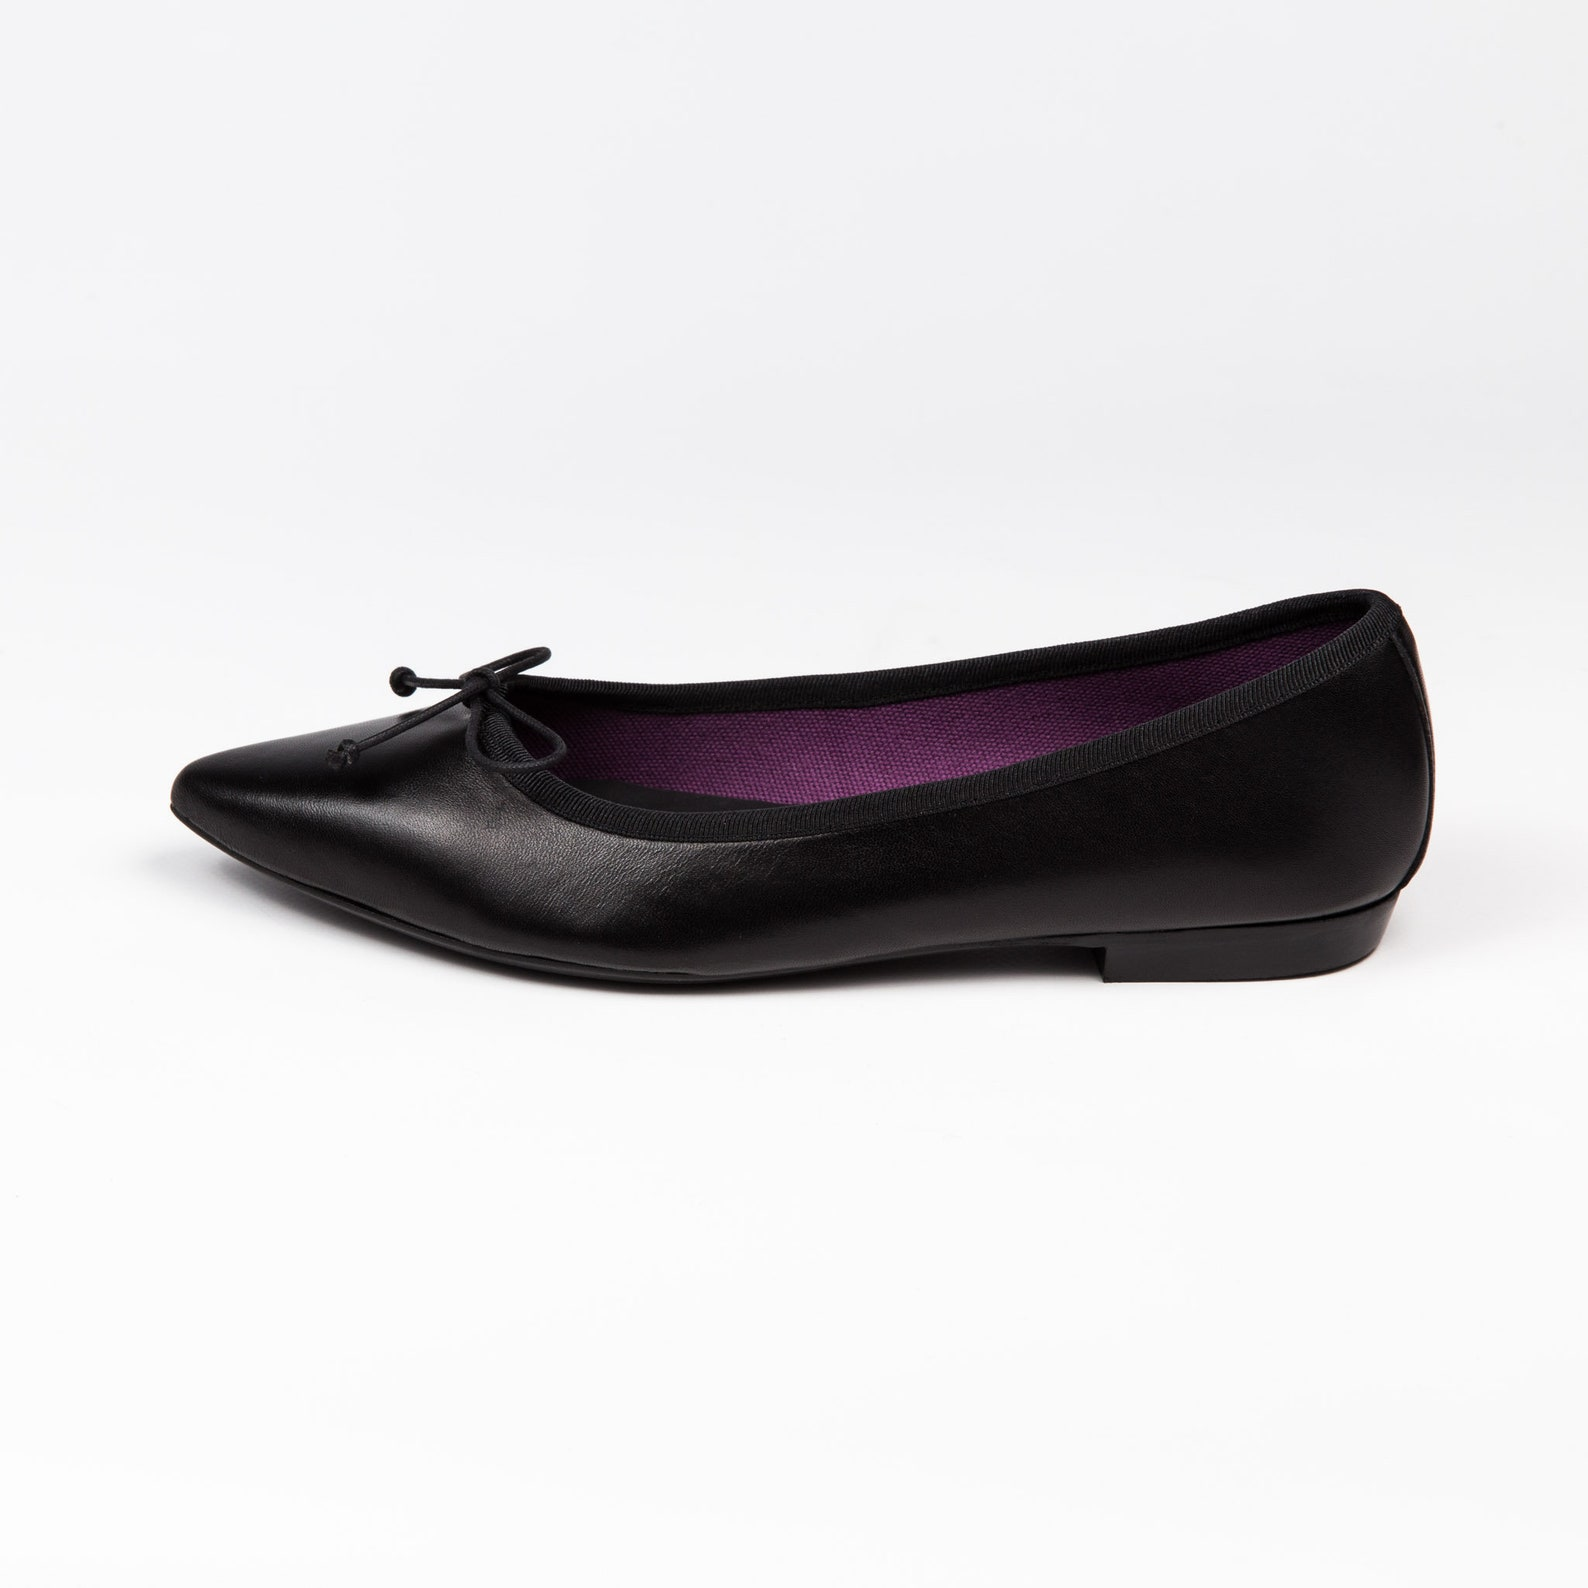 black ballet flats | pointed ballet flats | black flat shoes | black leather | women shoes | pointy flats | pointed black flats